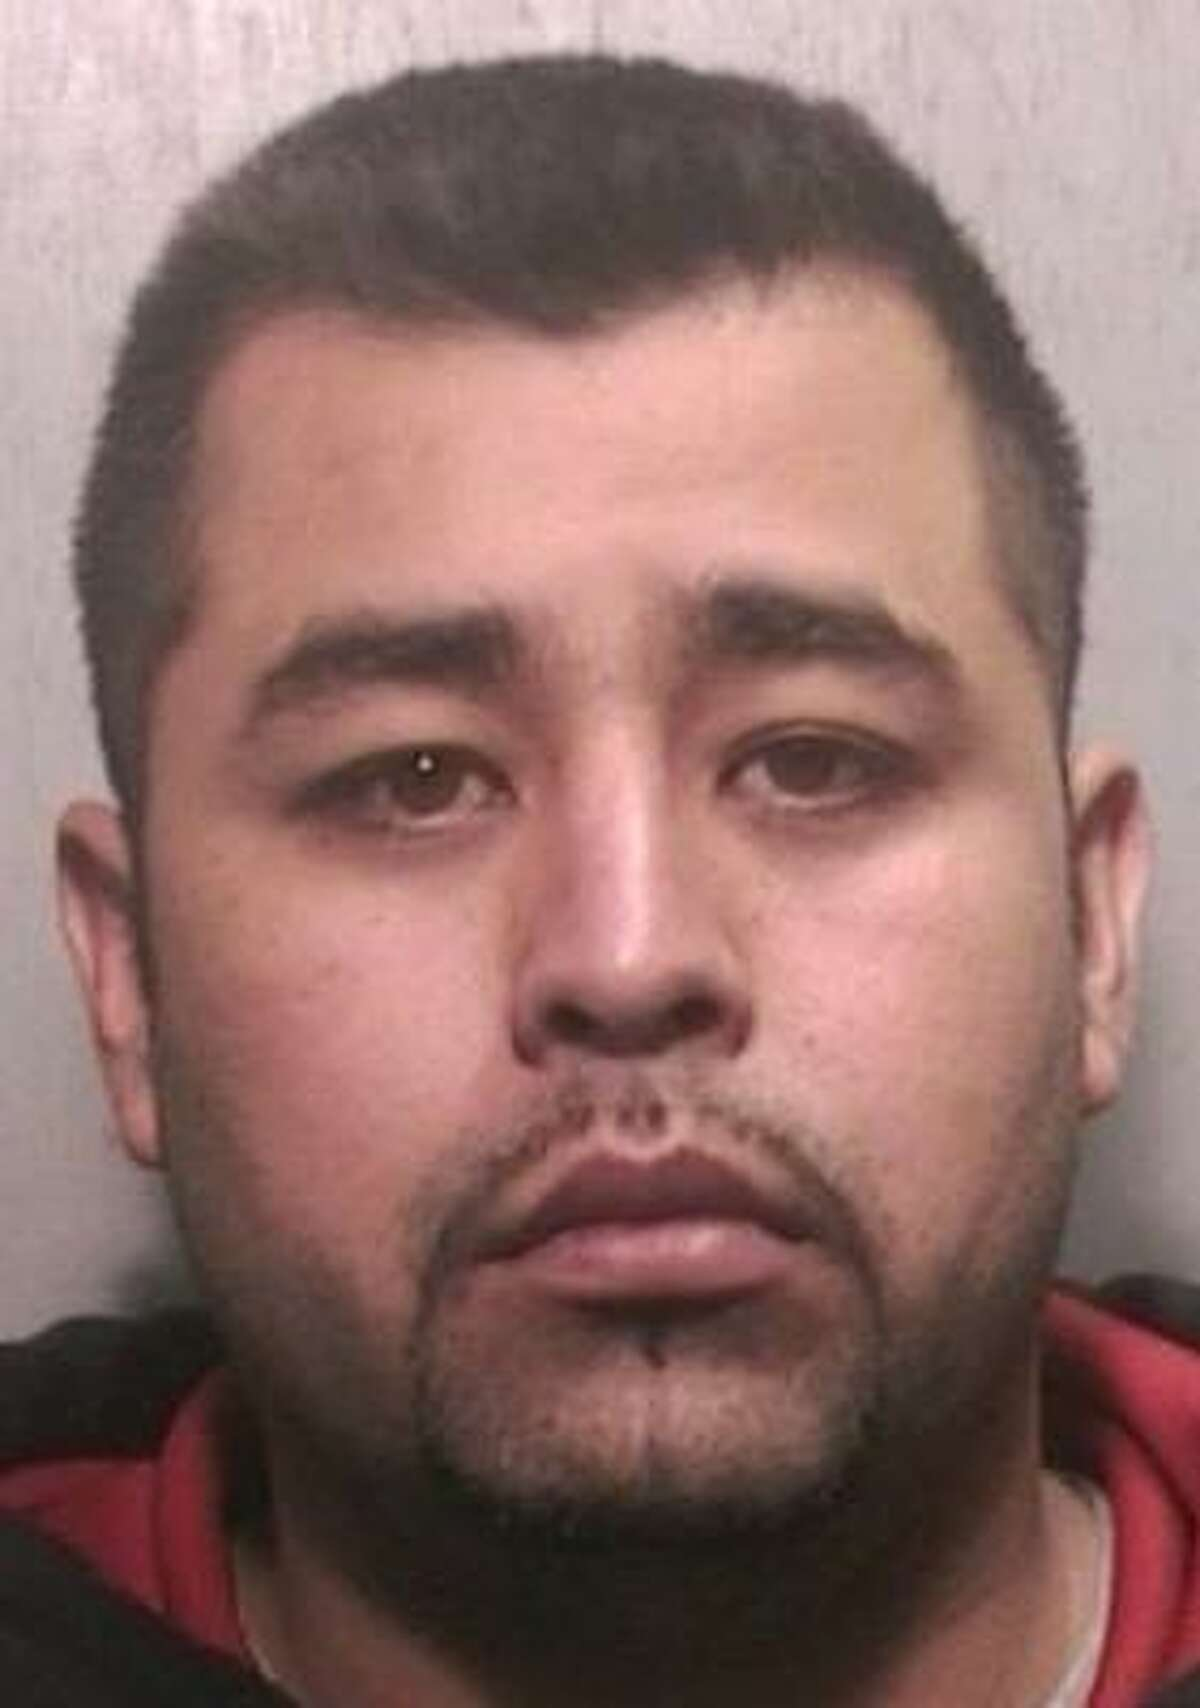 Alleged victims refused to testify against bar owner David Salazar, a U.S. citizen.